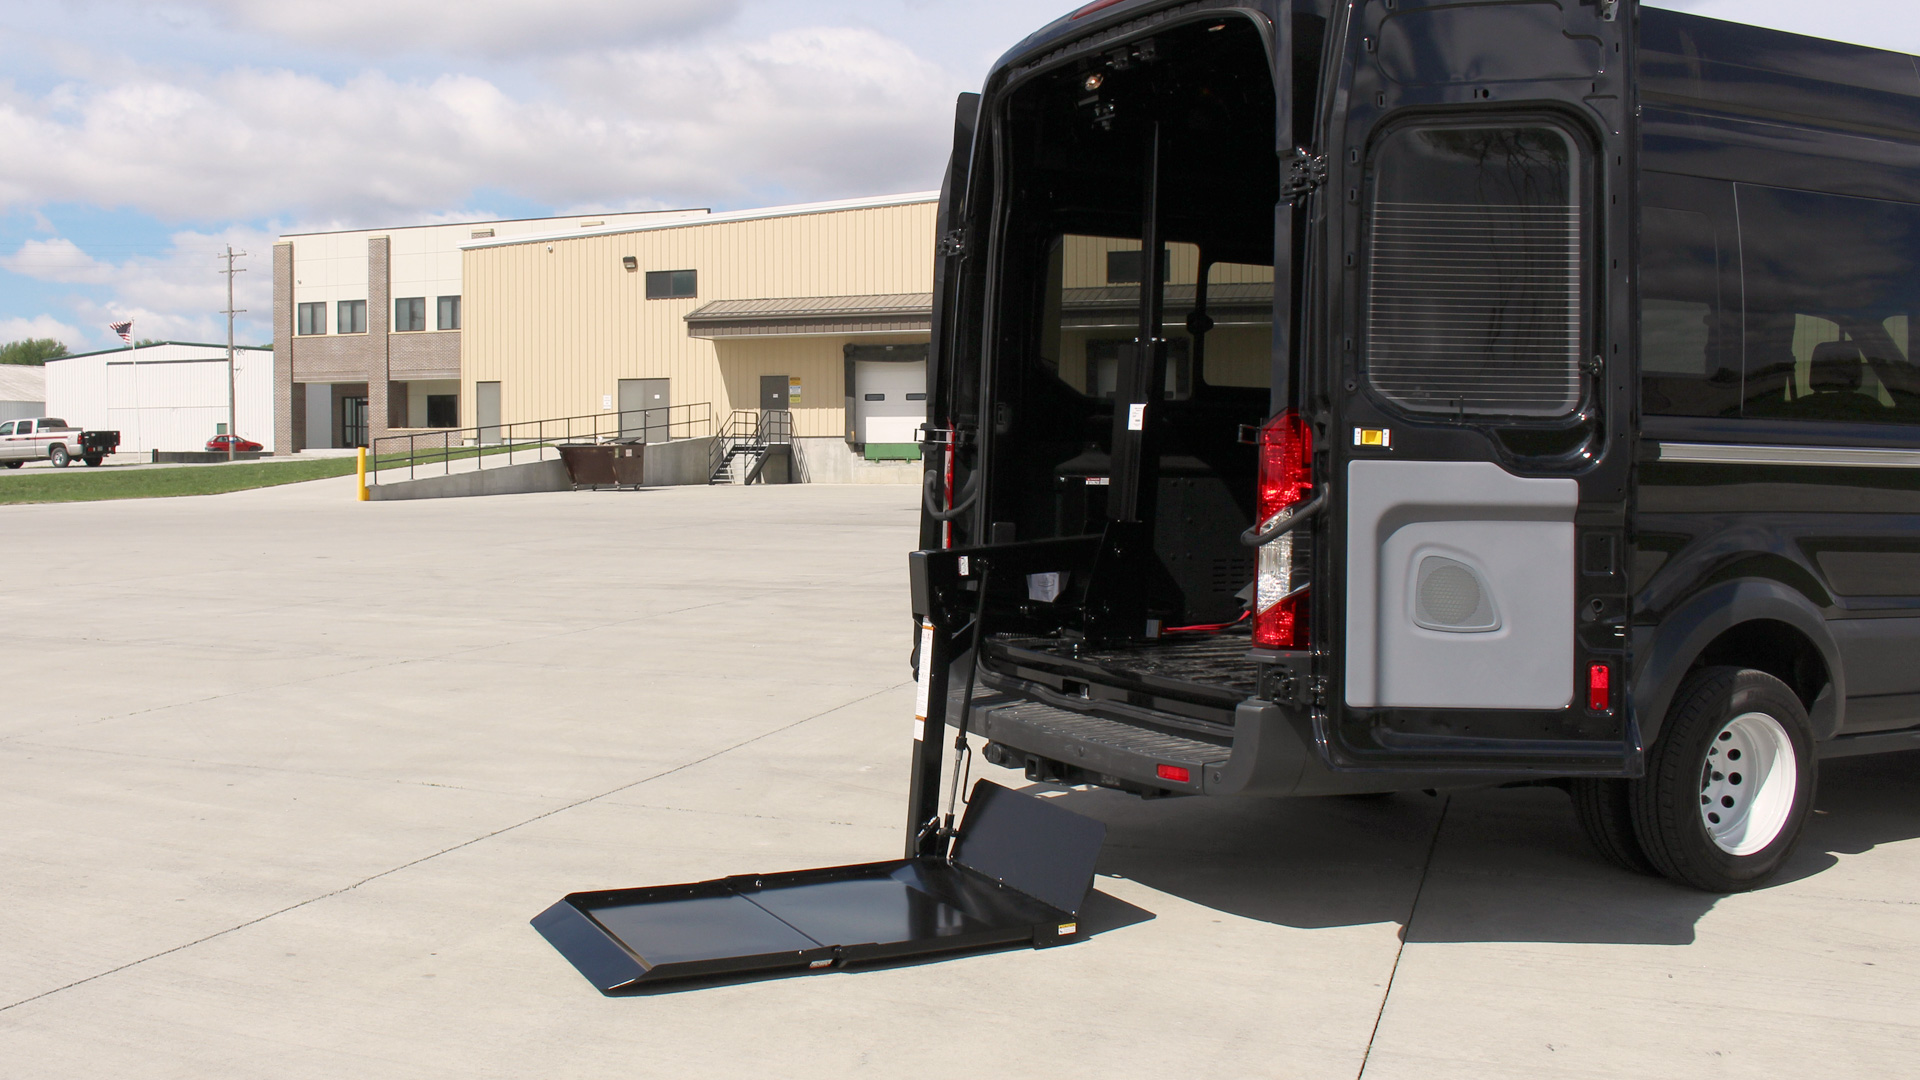 2014 Ram Promaster Cargo Van 3500 High Roof >> Tommy Gate - 650 Series